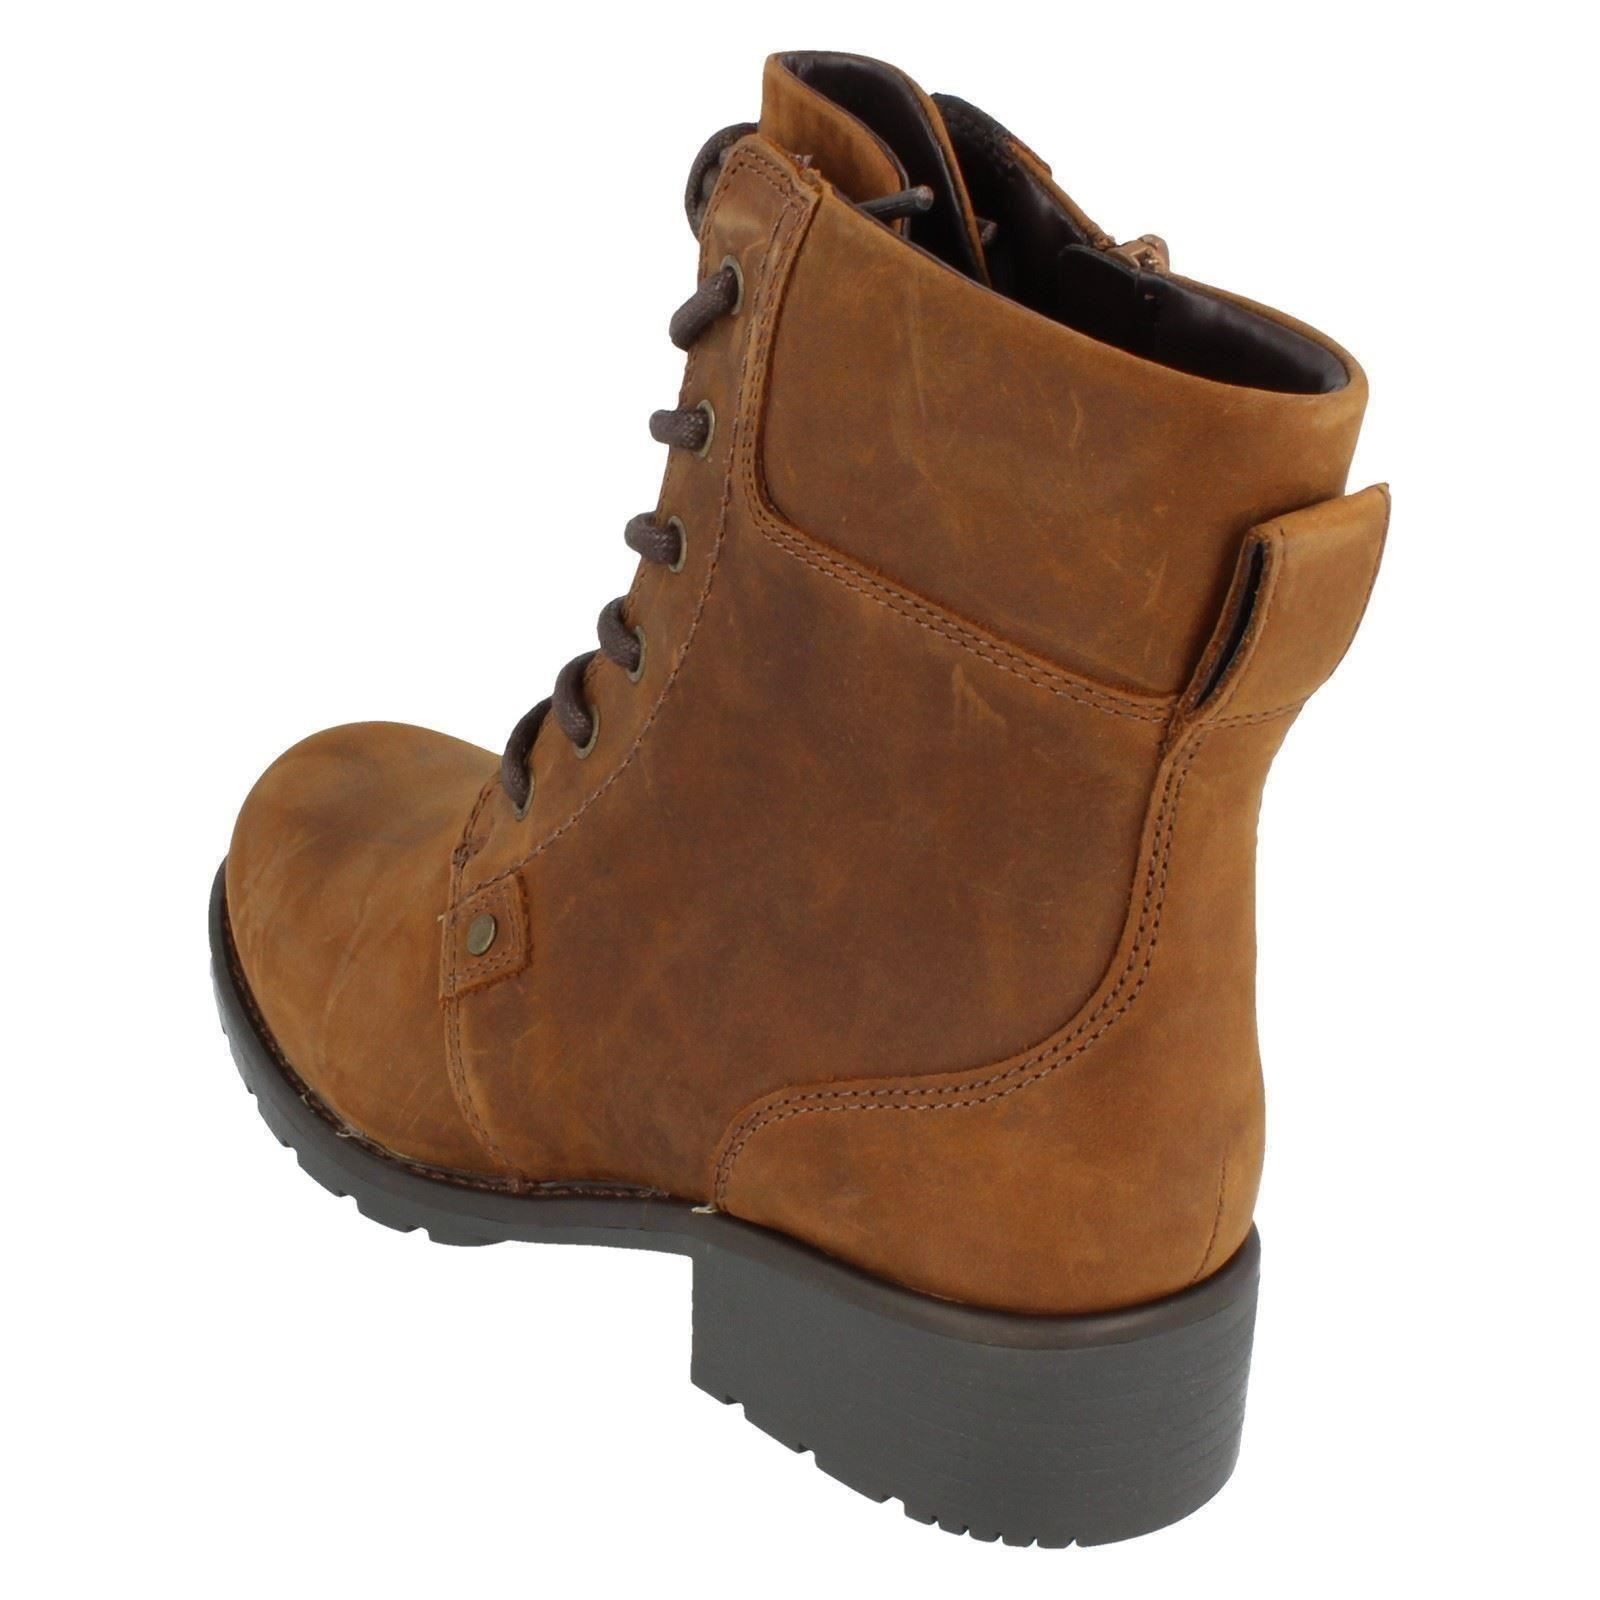 Ladies-Clarks-Casual-Lace-Up-Inside-Zip-Nubuck-Leather-Ankle-Boots-Orinoco-Spice thumbnail 22